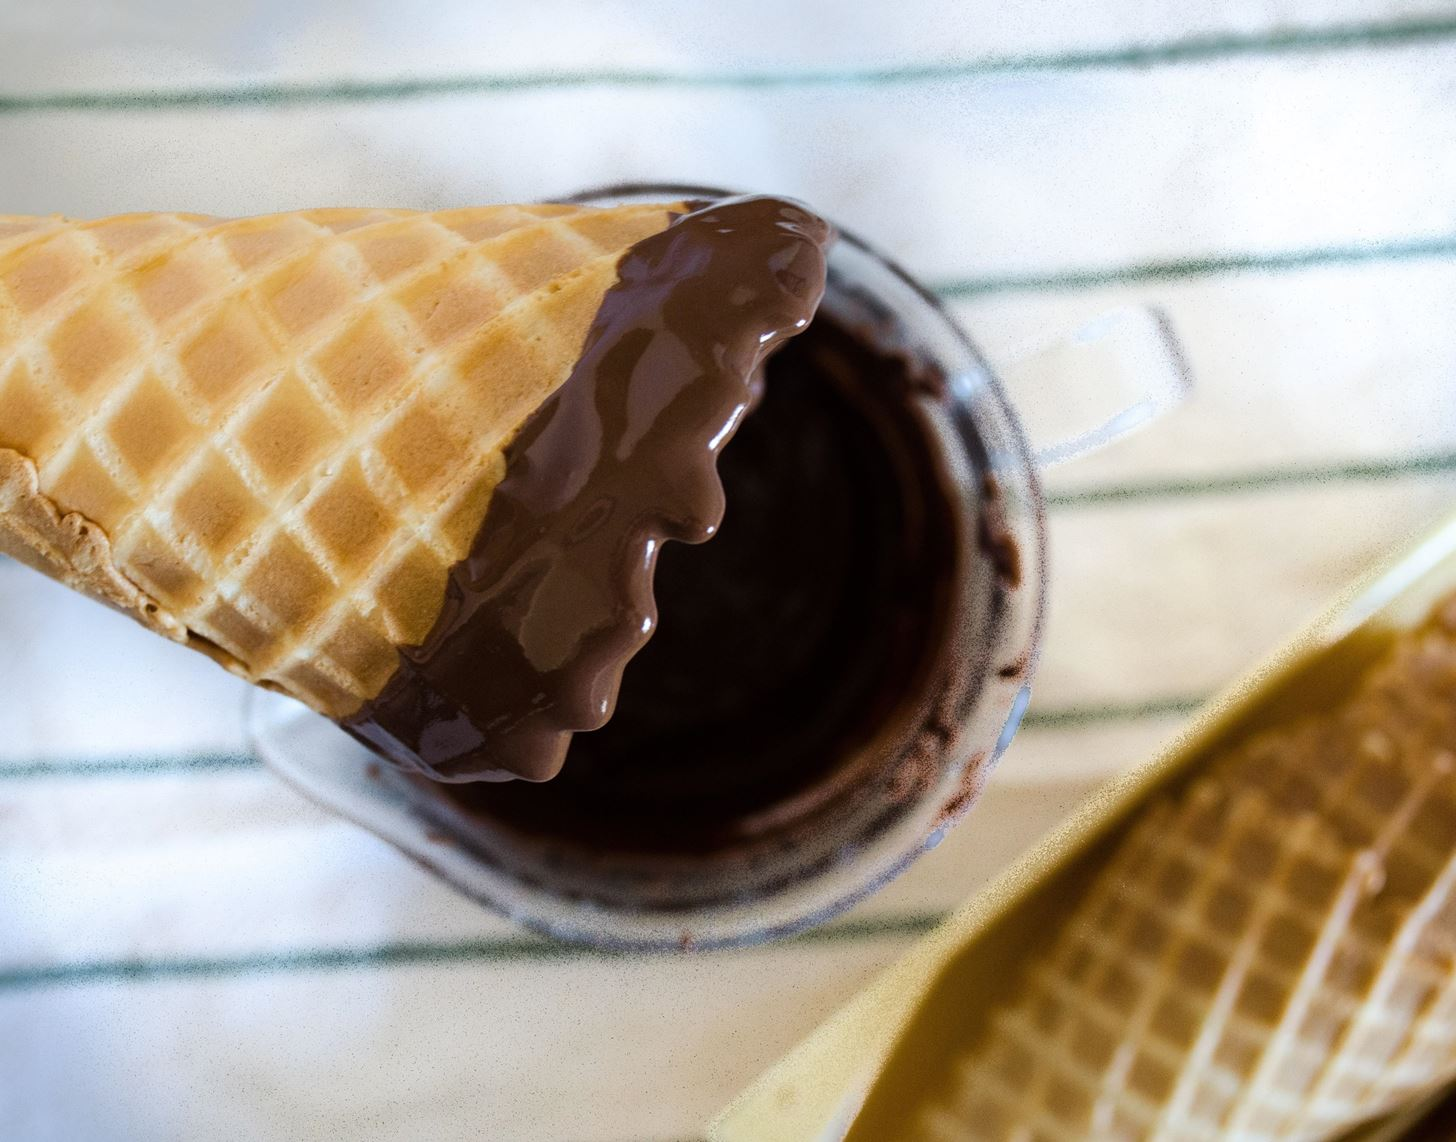 Finally—Impress Your Friends with Espresso in a Cone